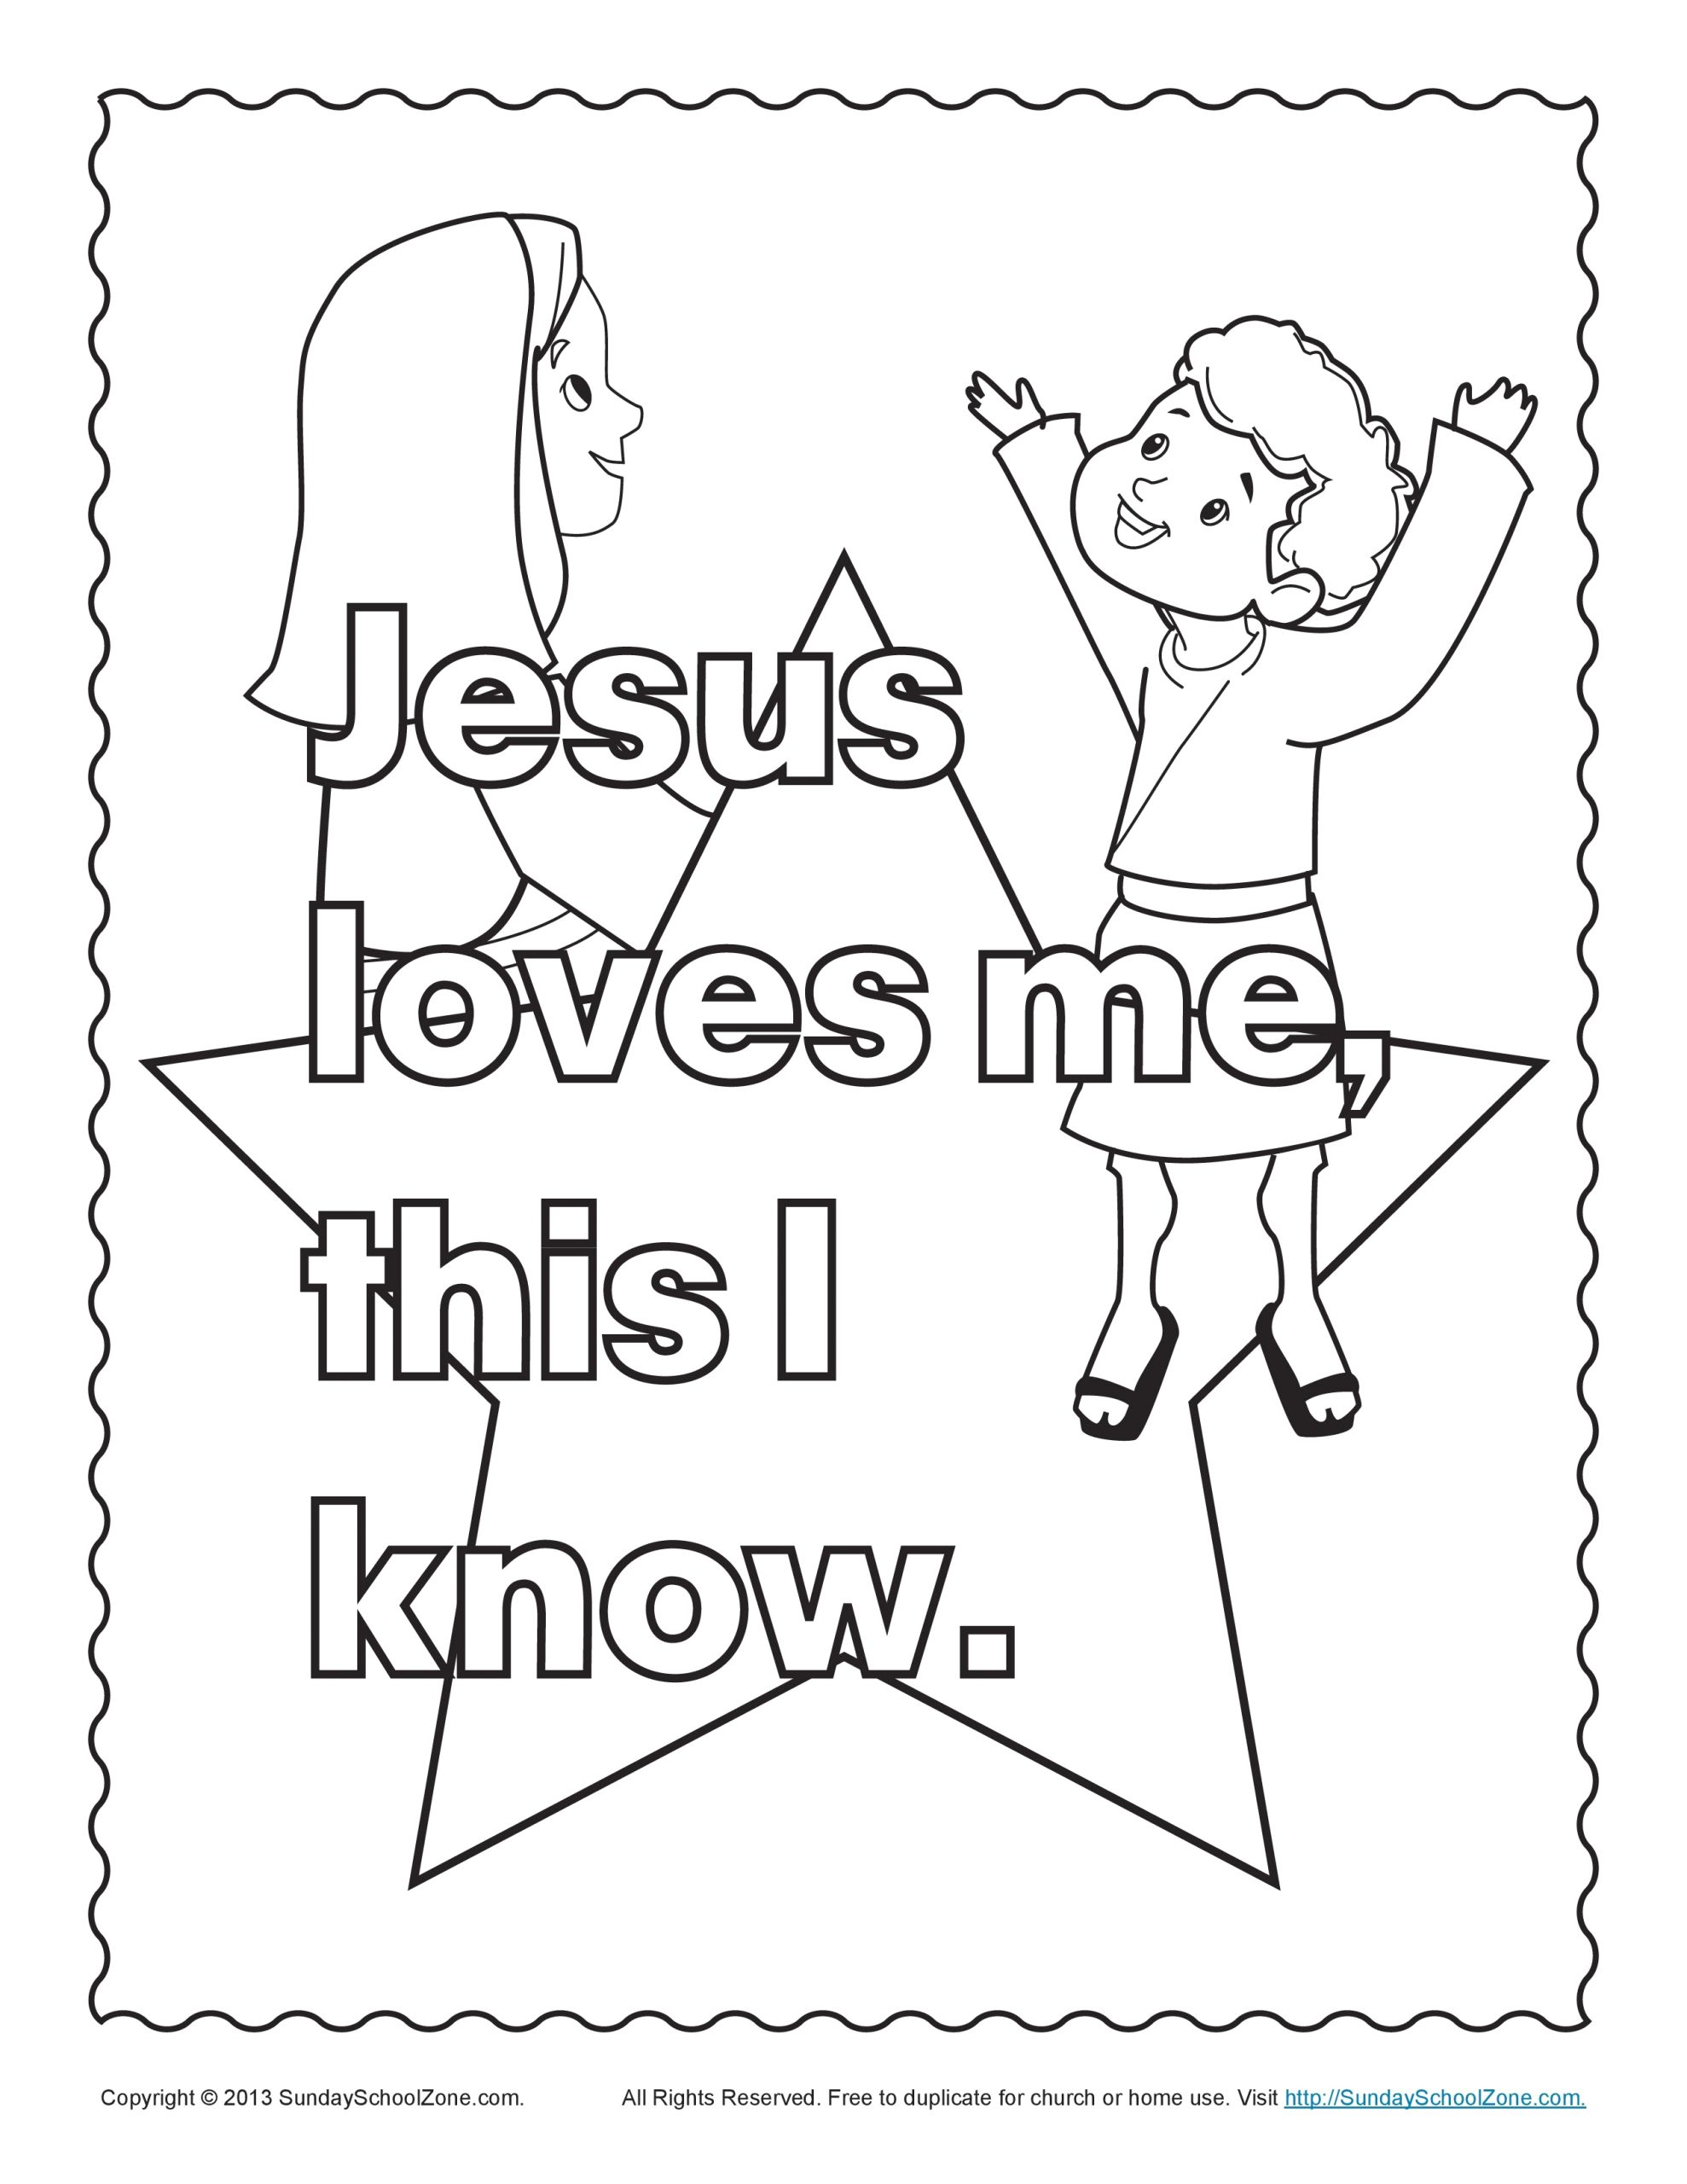 Free Printable Bible Story Coloring Pages for Preschoolers Free Printable Bible Coloring Pages for Preschoolers at